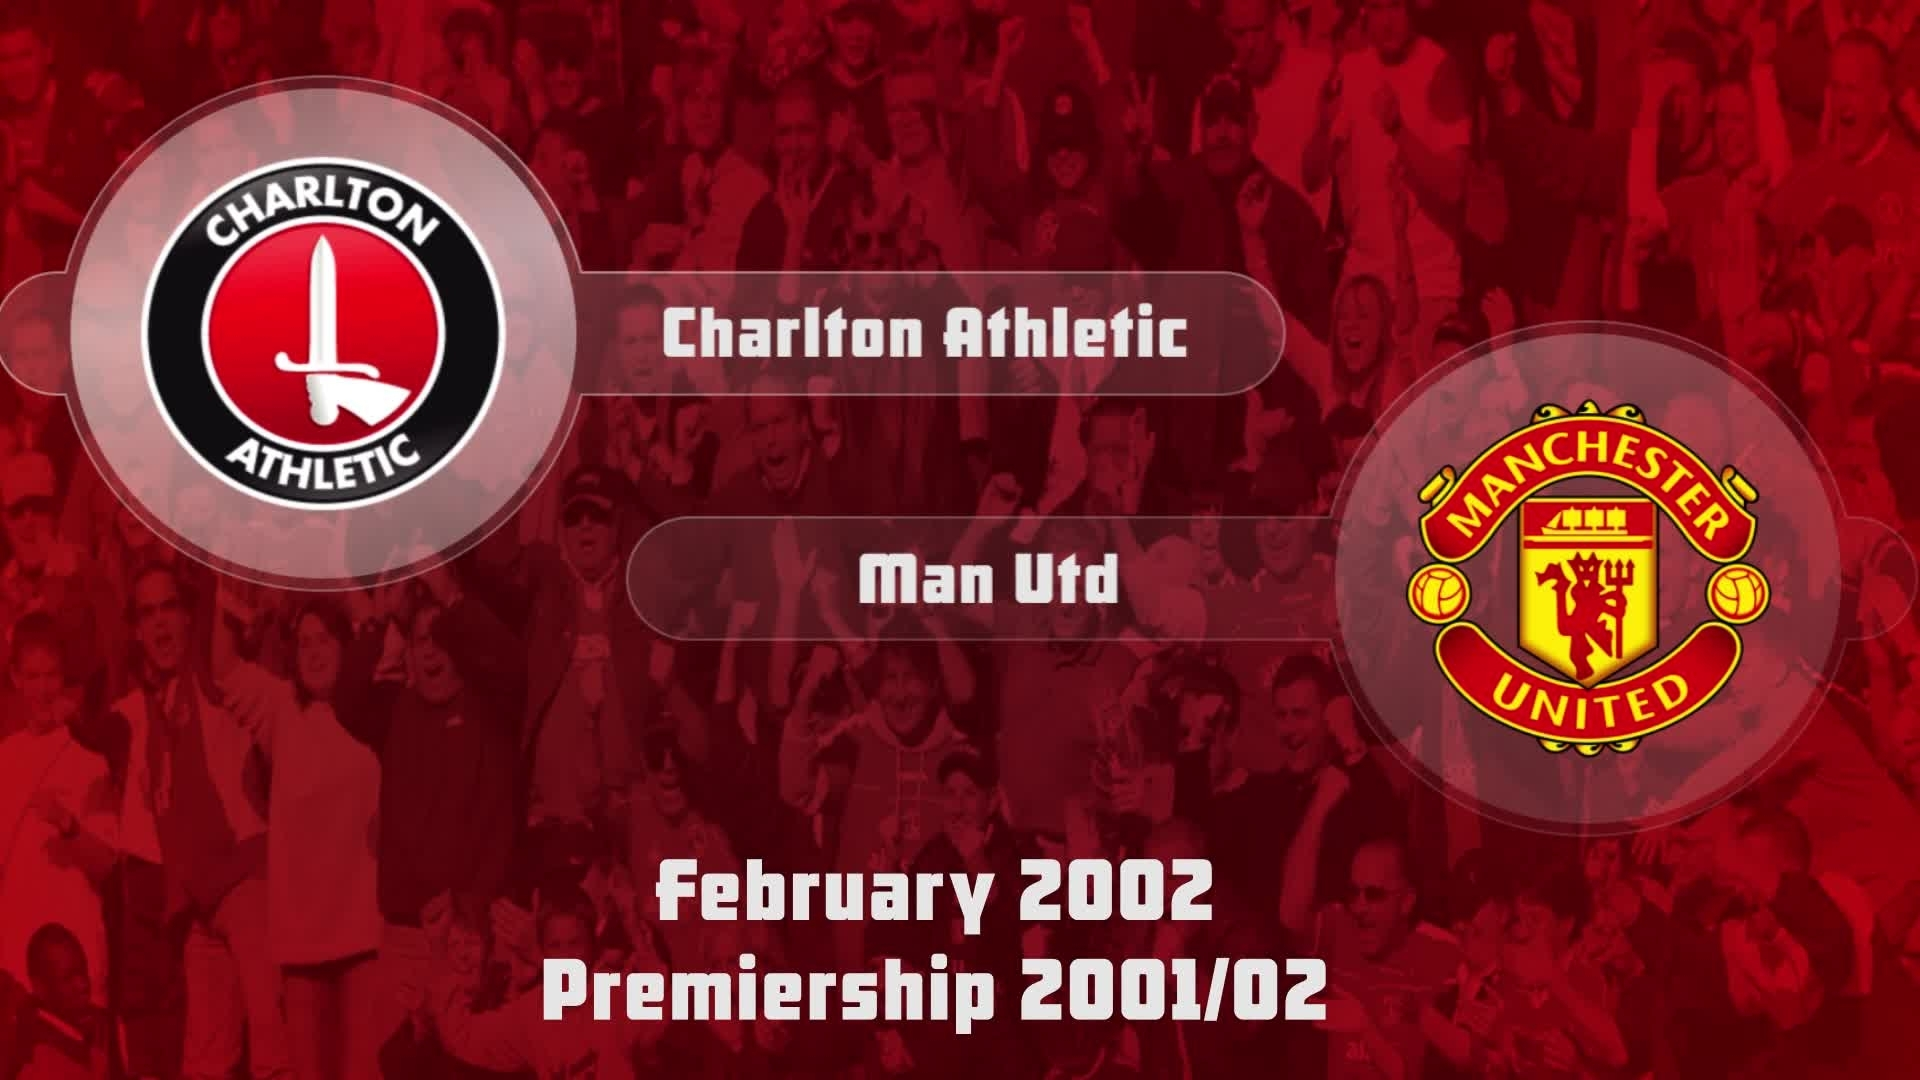 31 HIGHLIGHTS | Charlton 0 Man Utd 2 (Feb 2002)